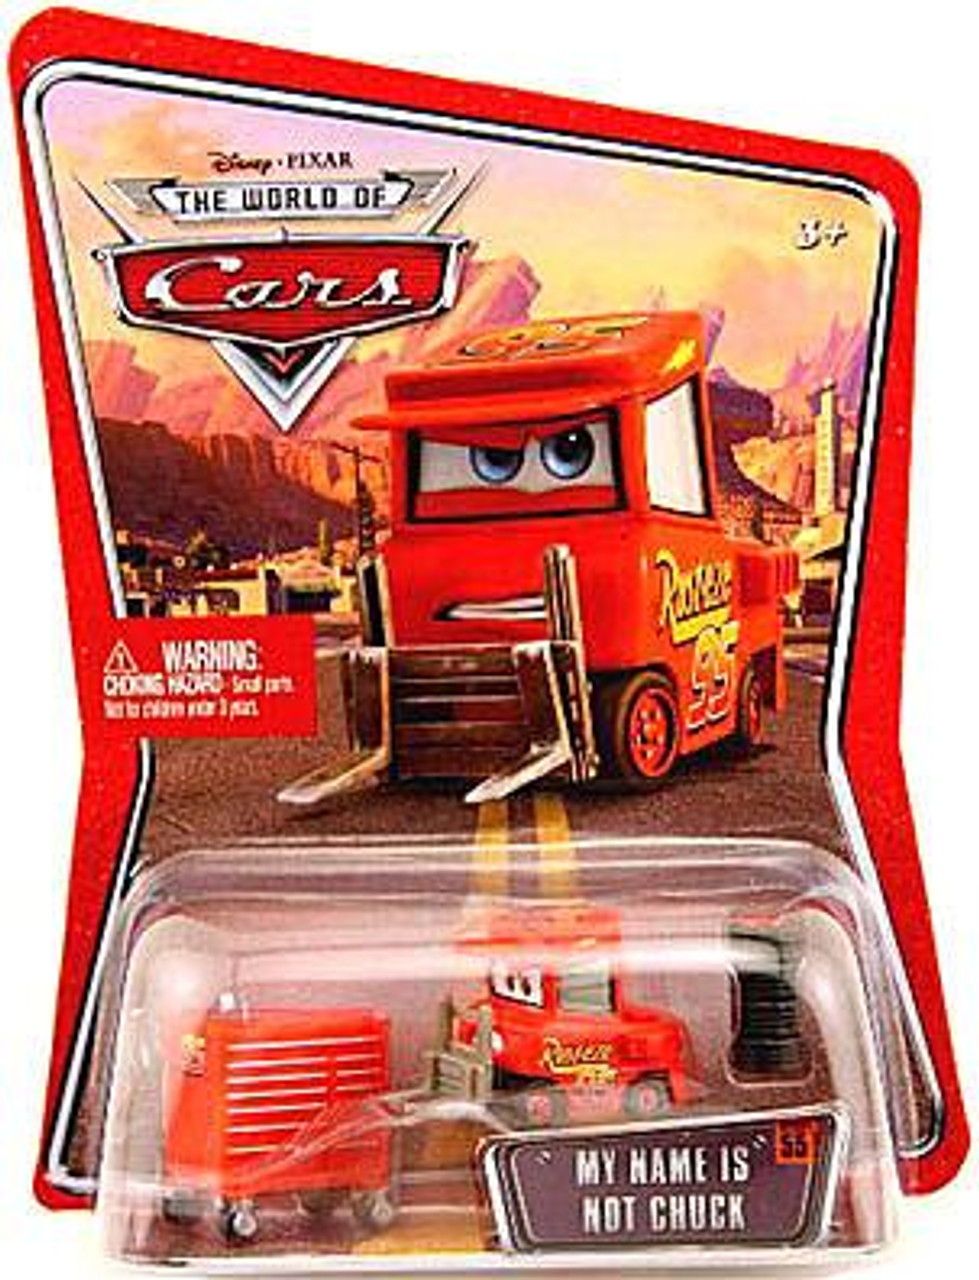 Disney Cars The World of Cars My Name is Not Chuck Diecast Car